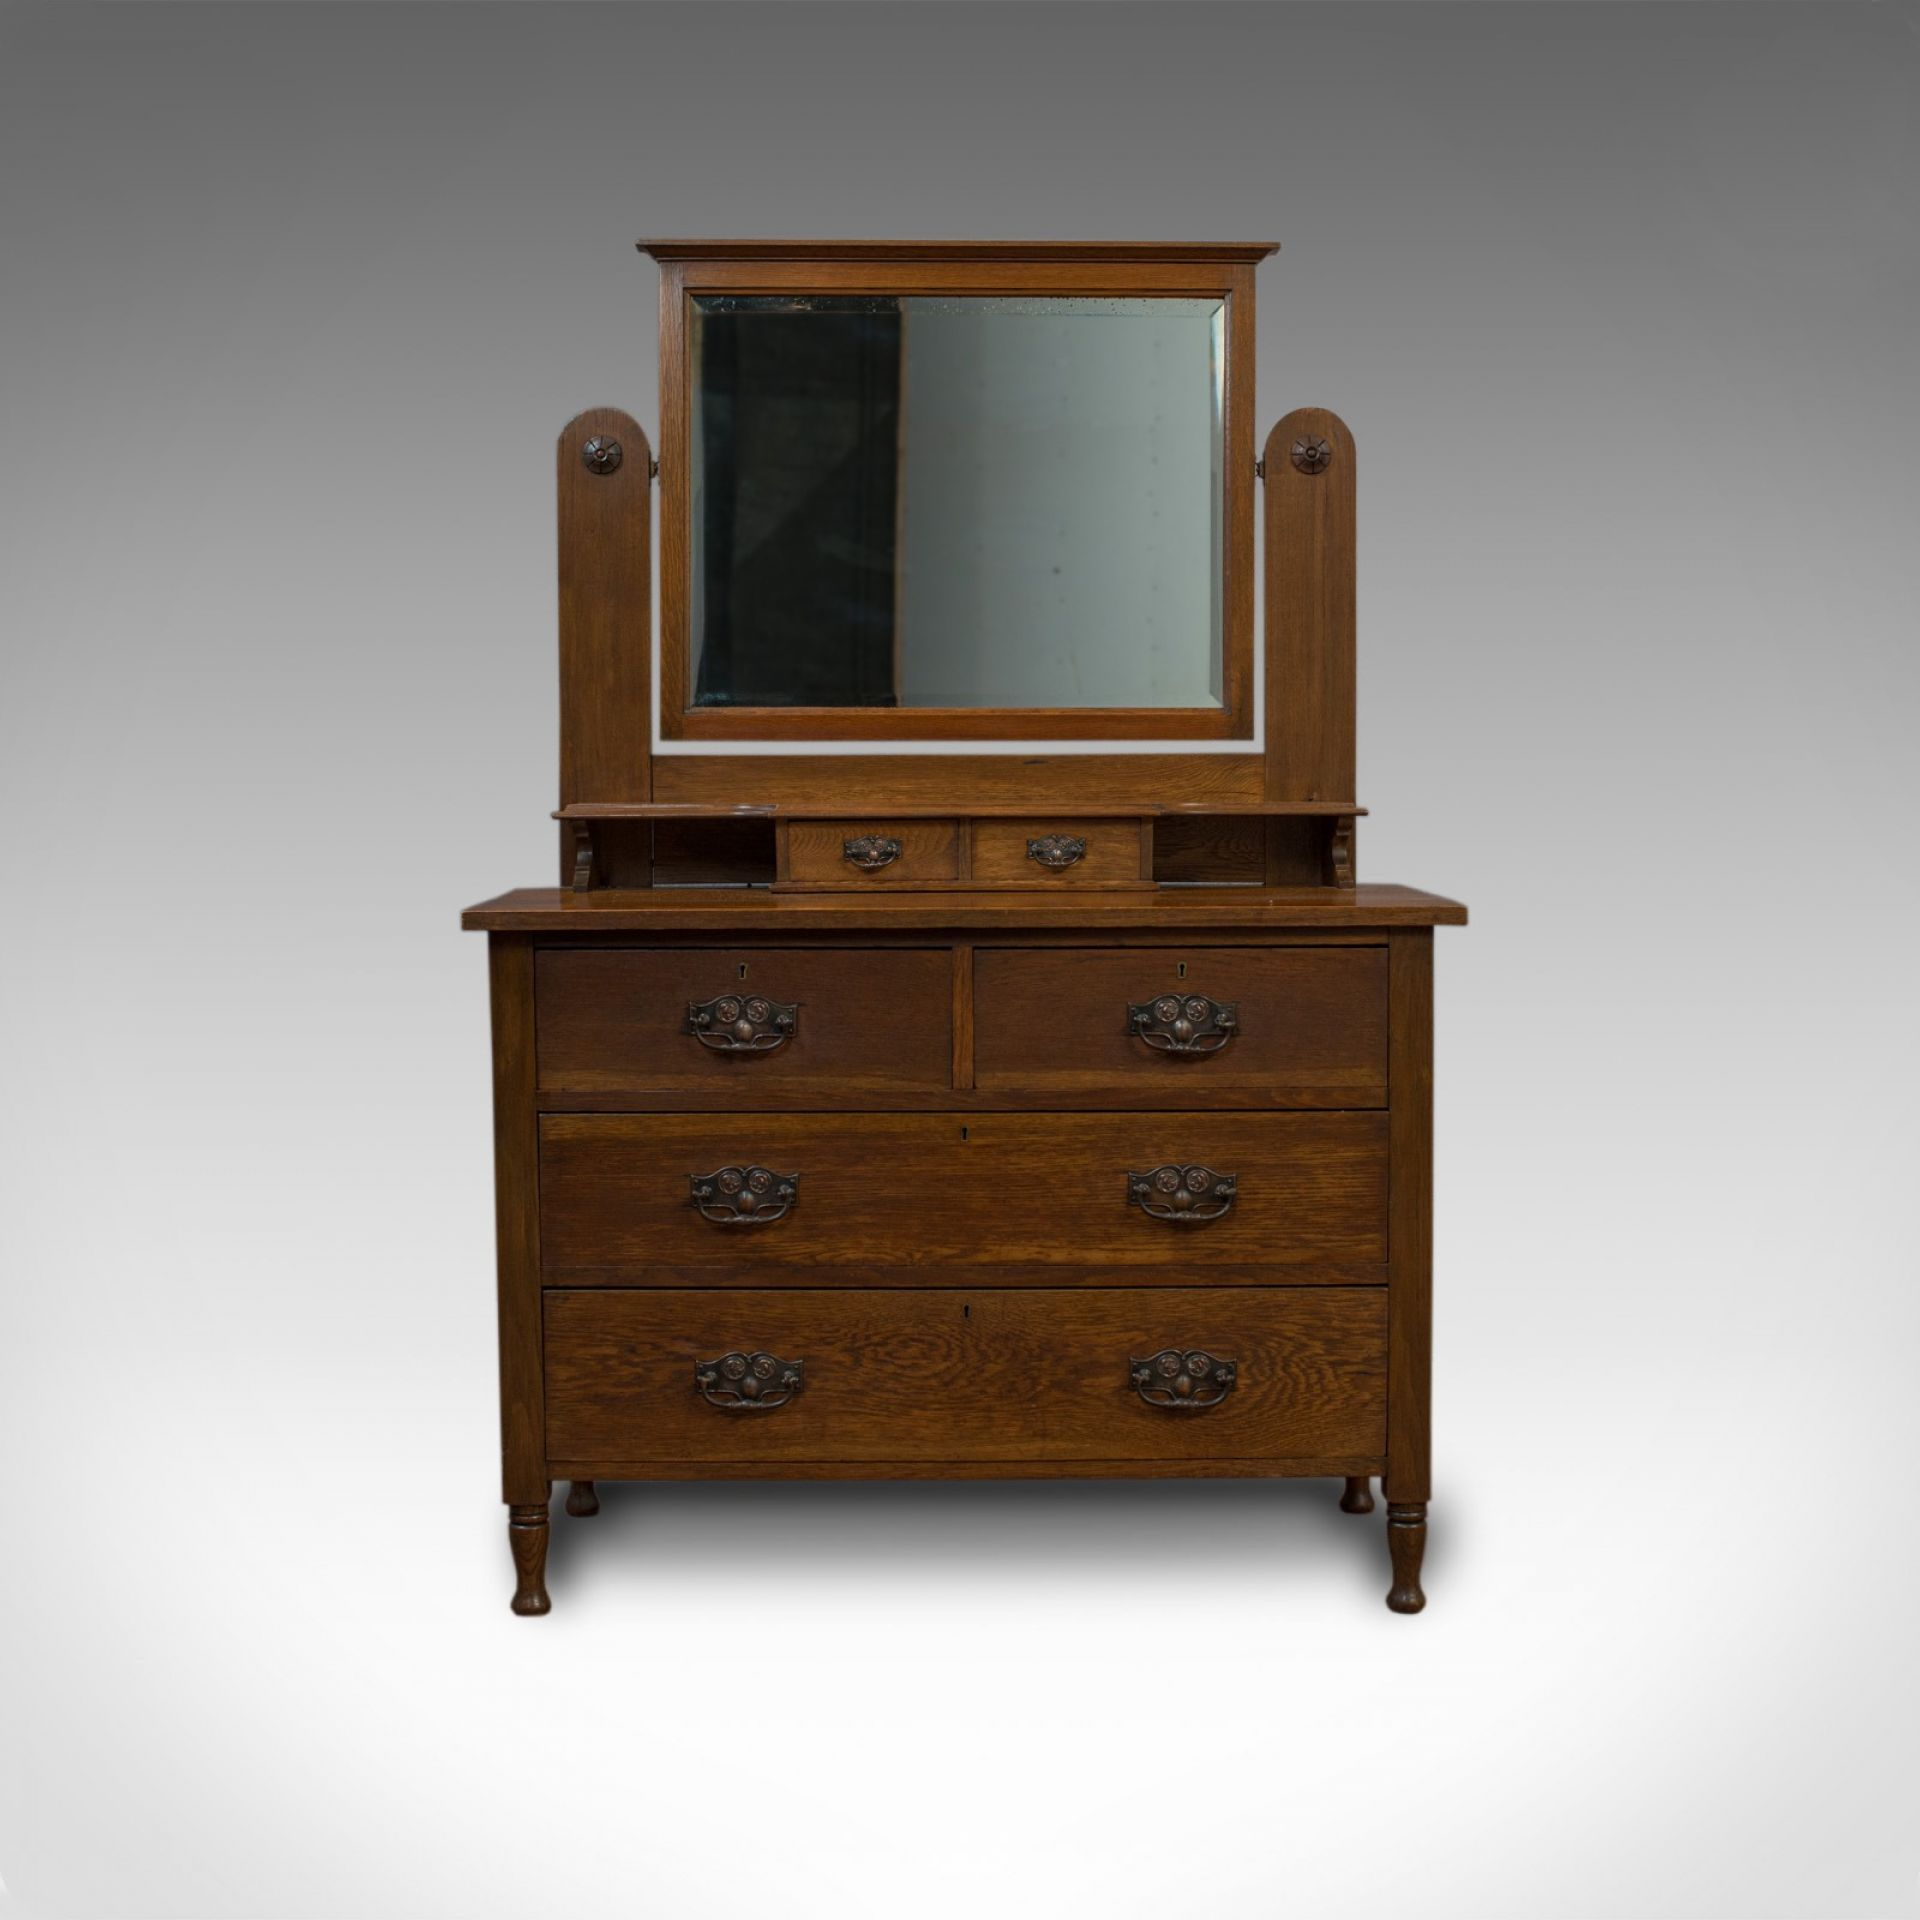 Antique Dressing Table, Ray and Miles, Edwardian, Oak, Vanity Chest, Circa 1910